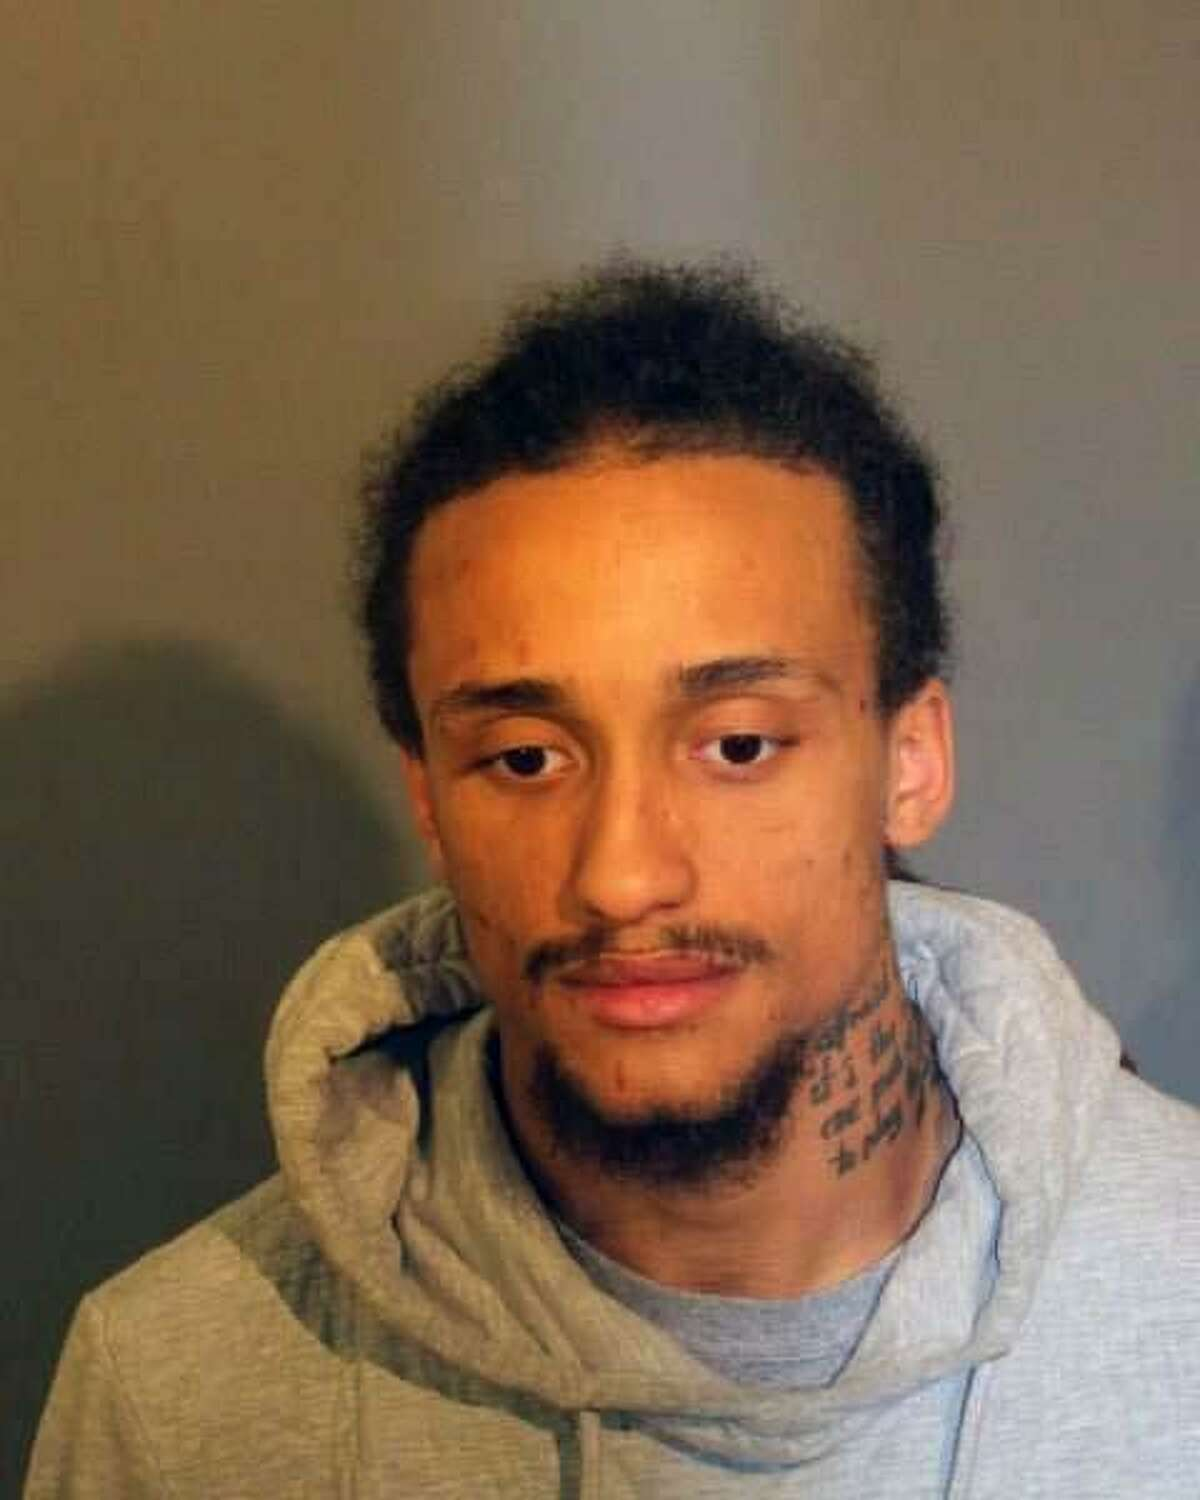 John Fernandez, 26, of Southington, Conn., was charged with interfering with police, possession of less than half an ounce of marijuana, five counts of possession of a controlled substance, five counts of possession of a controlled substance with intent to sell, five counts of possession of a controlled substance within 1,500 feet of a school, five counts of possession of a controlled substance with intent to sell within 1,500 feet of a school, possession of drug paraphernalia, possession of drug paraphernalia within 1,500 feet of a school and operating a motor vehicle under suspension.